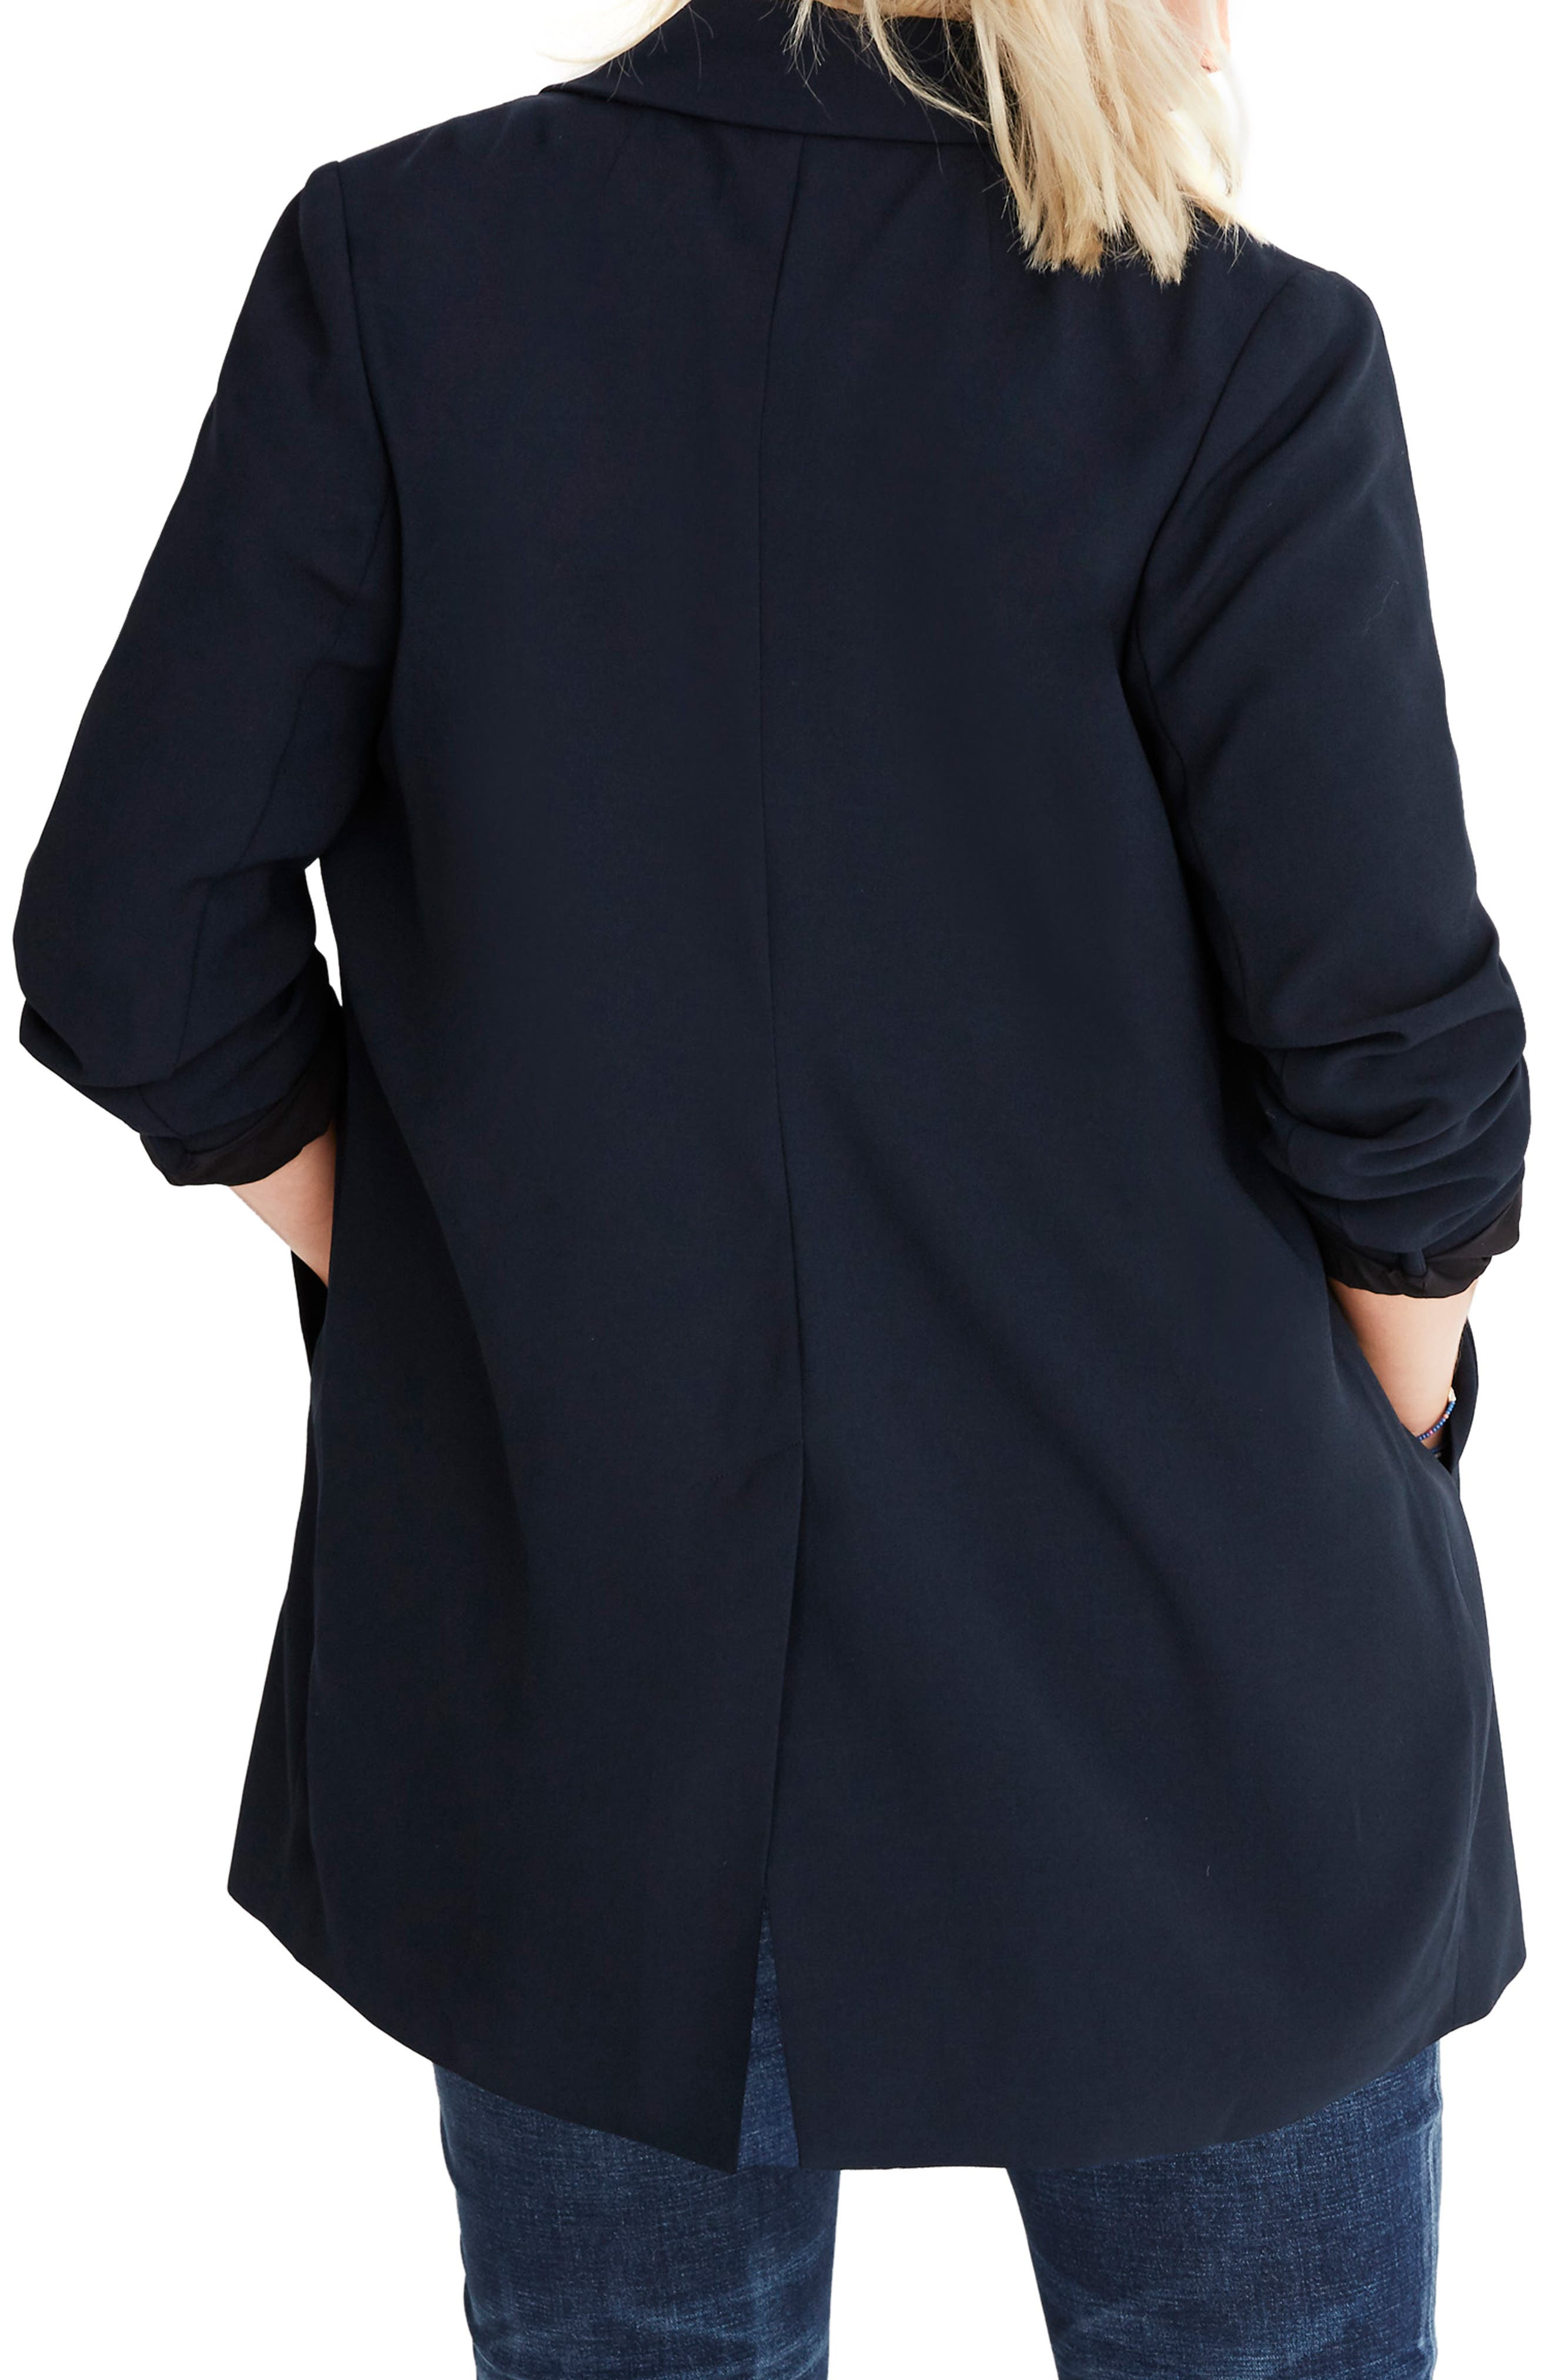 Caldwell Double Breasted Blazer,                             Alternate thumbnail 7, color,                             TRUE BLACK